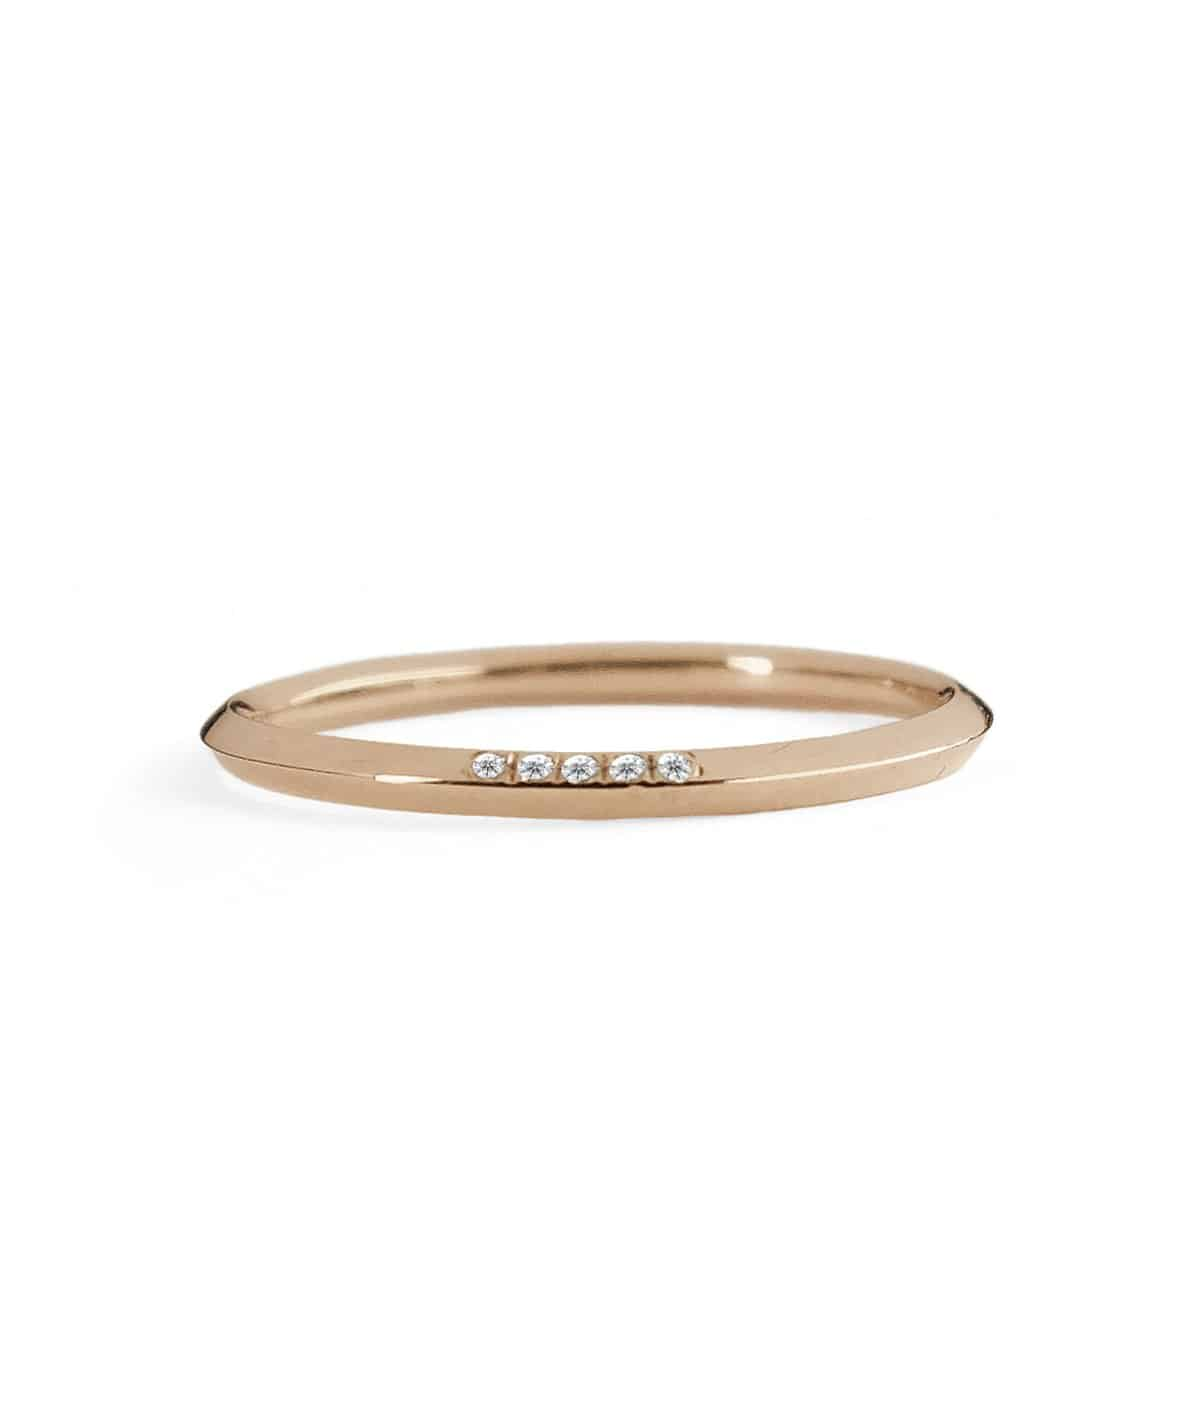 rose gold 5 pointes wedding band